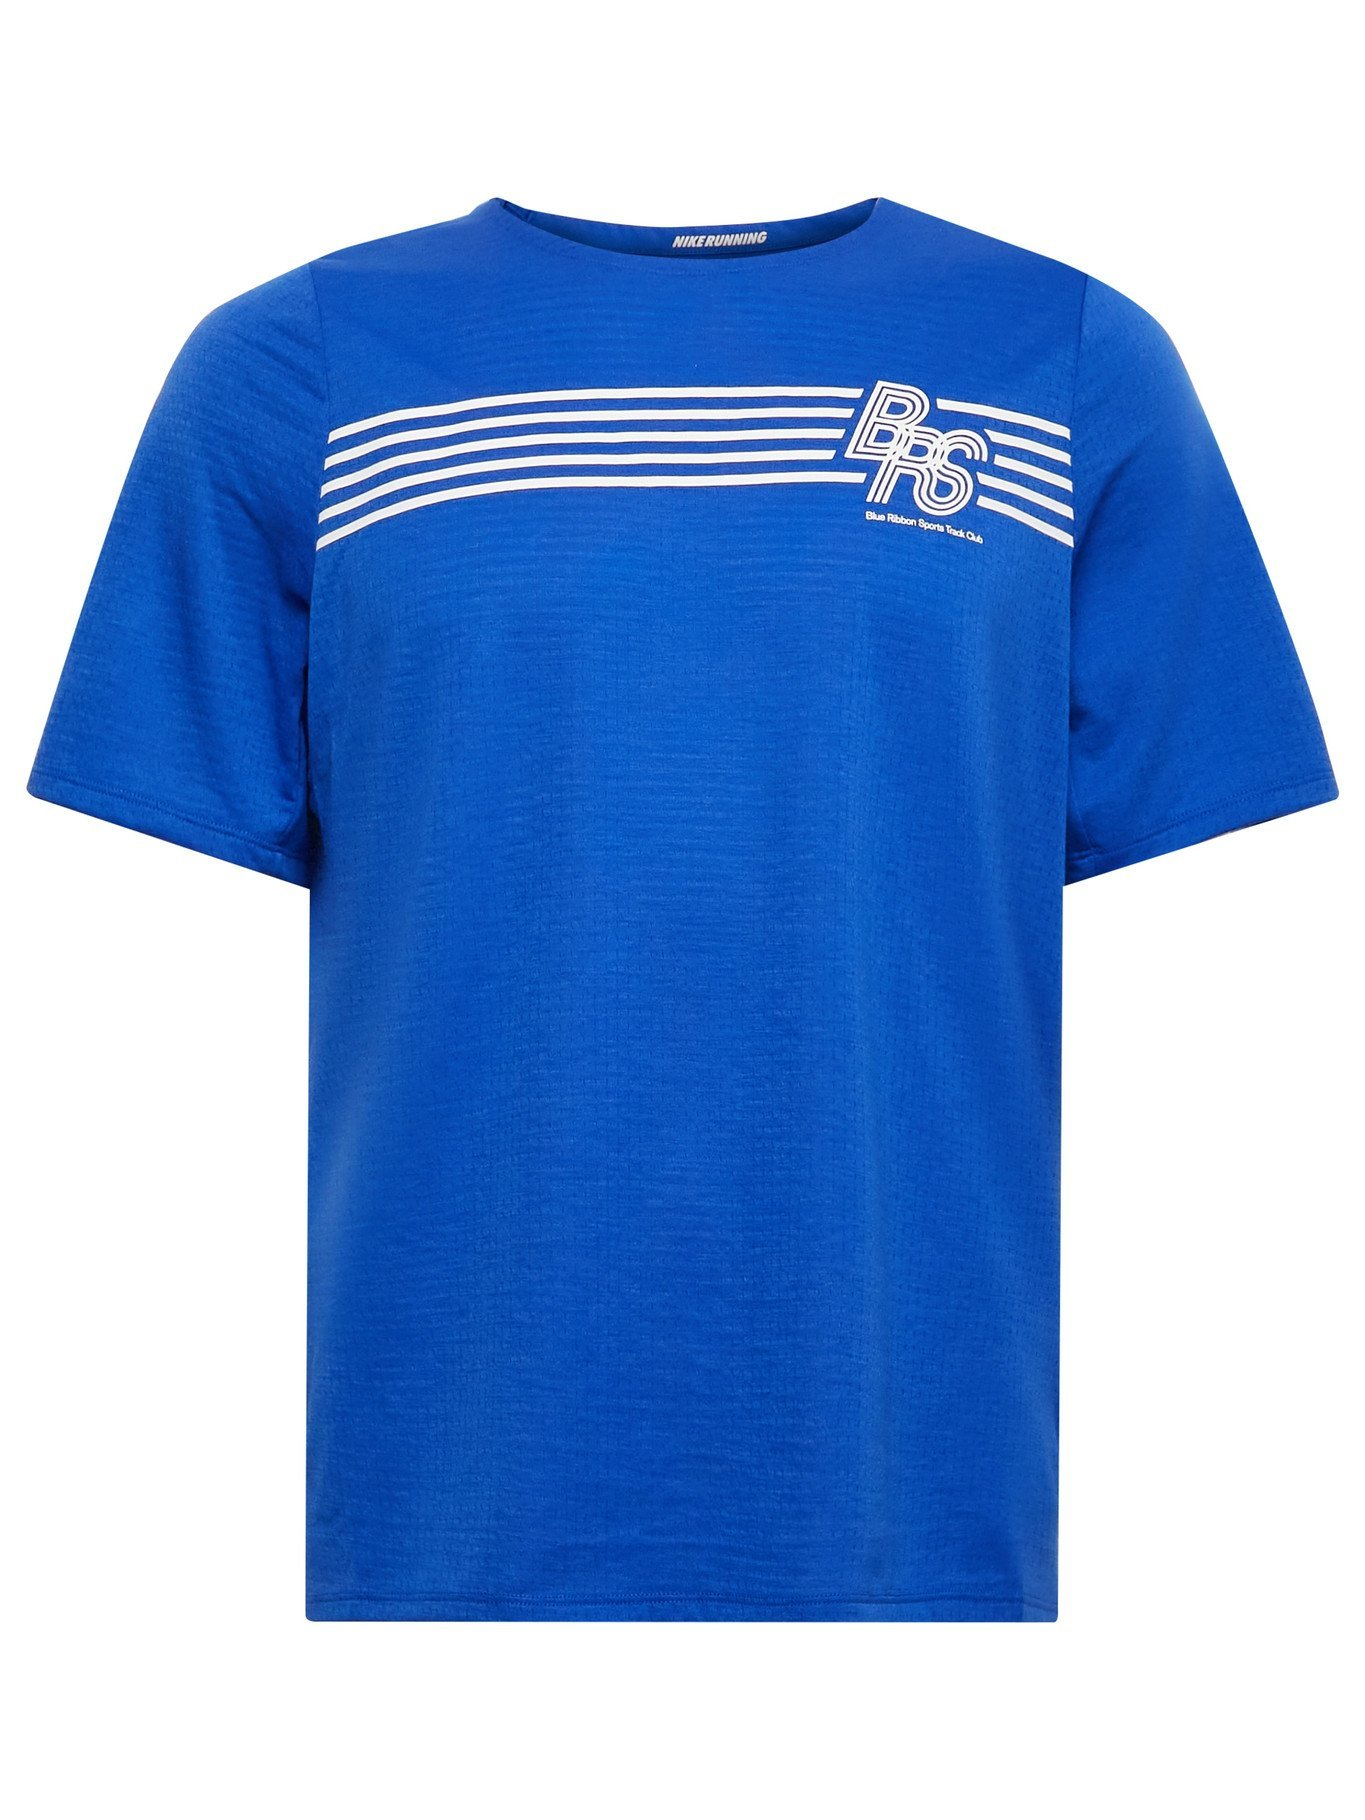 Photo: NIKE RUNNING - Rise 365 BRS Printed Perforated Dri-FIT T-Shirt - Blue